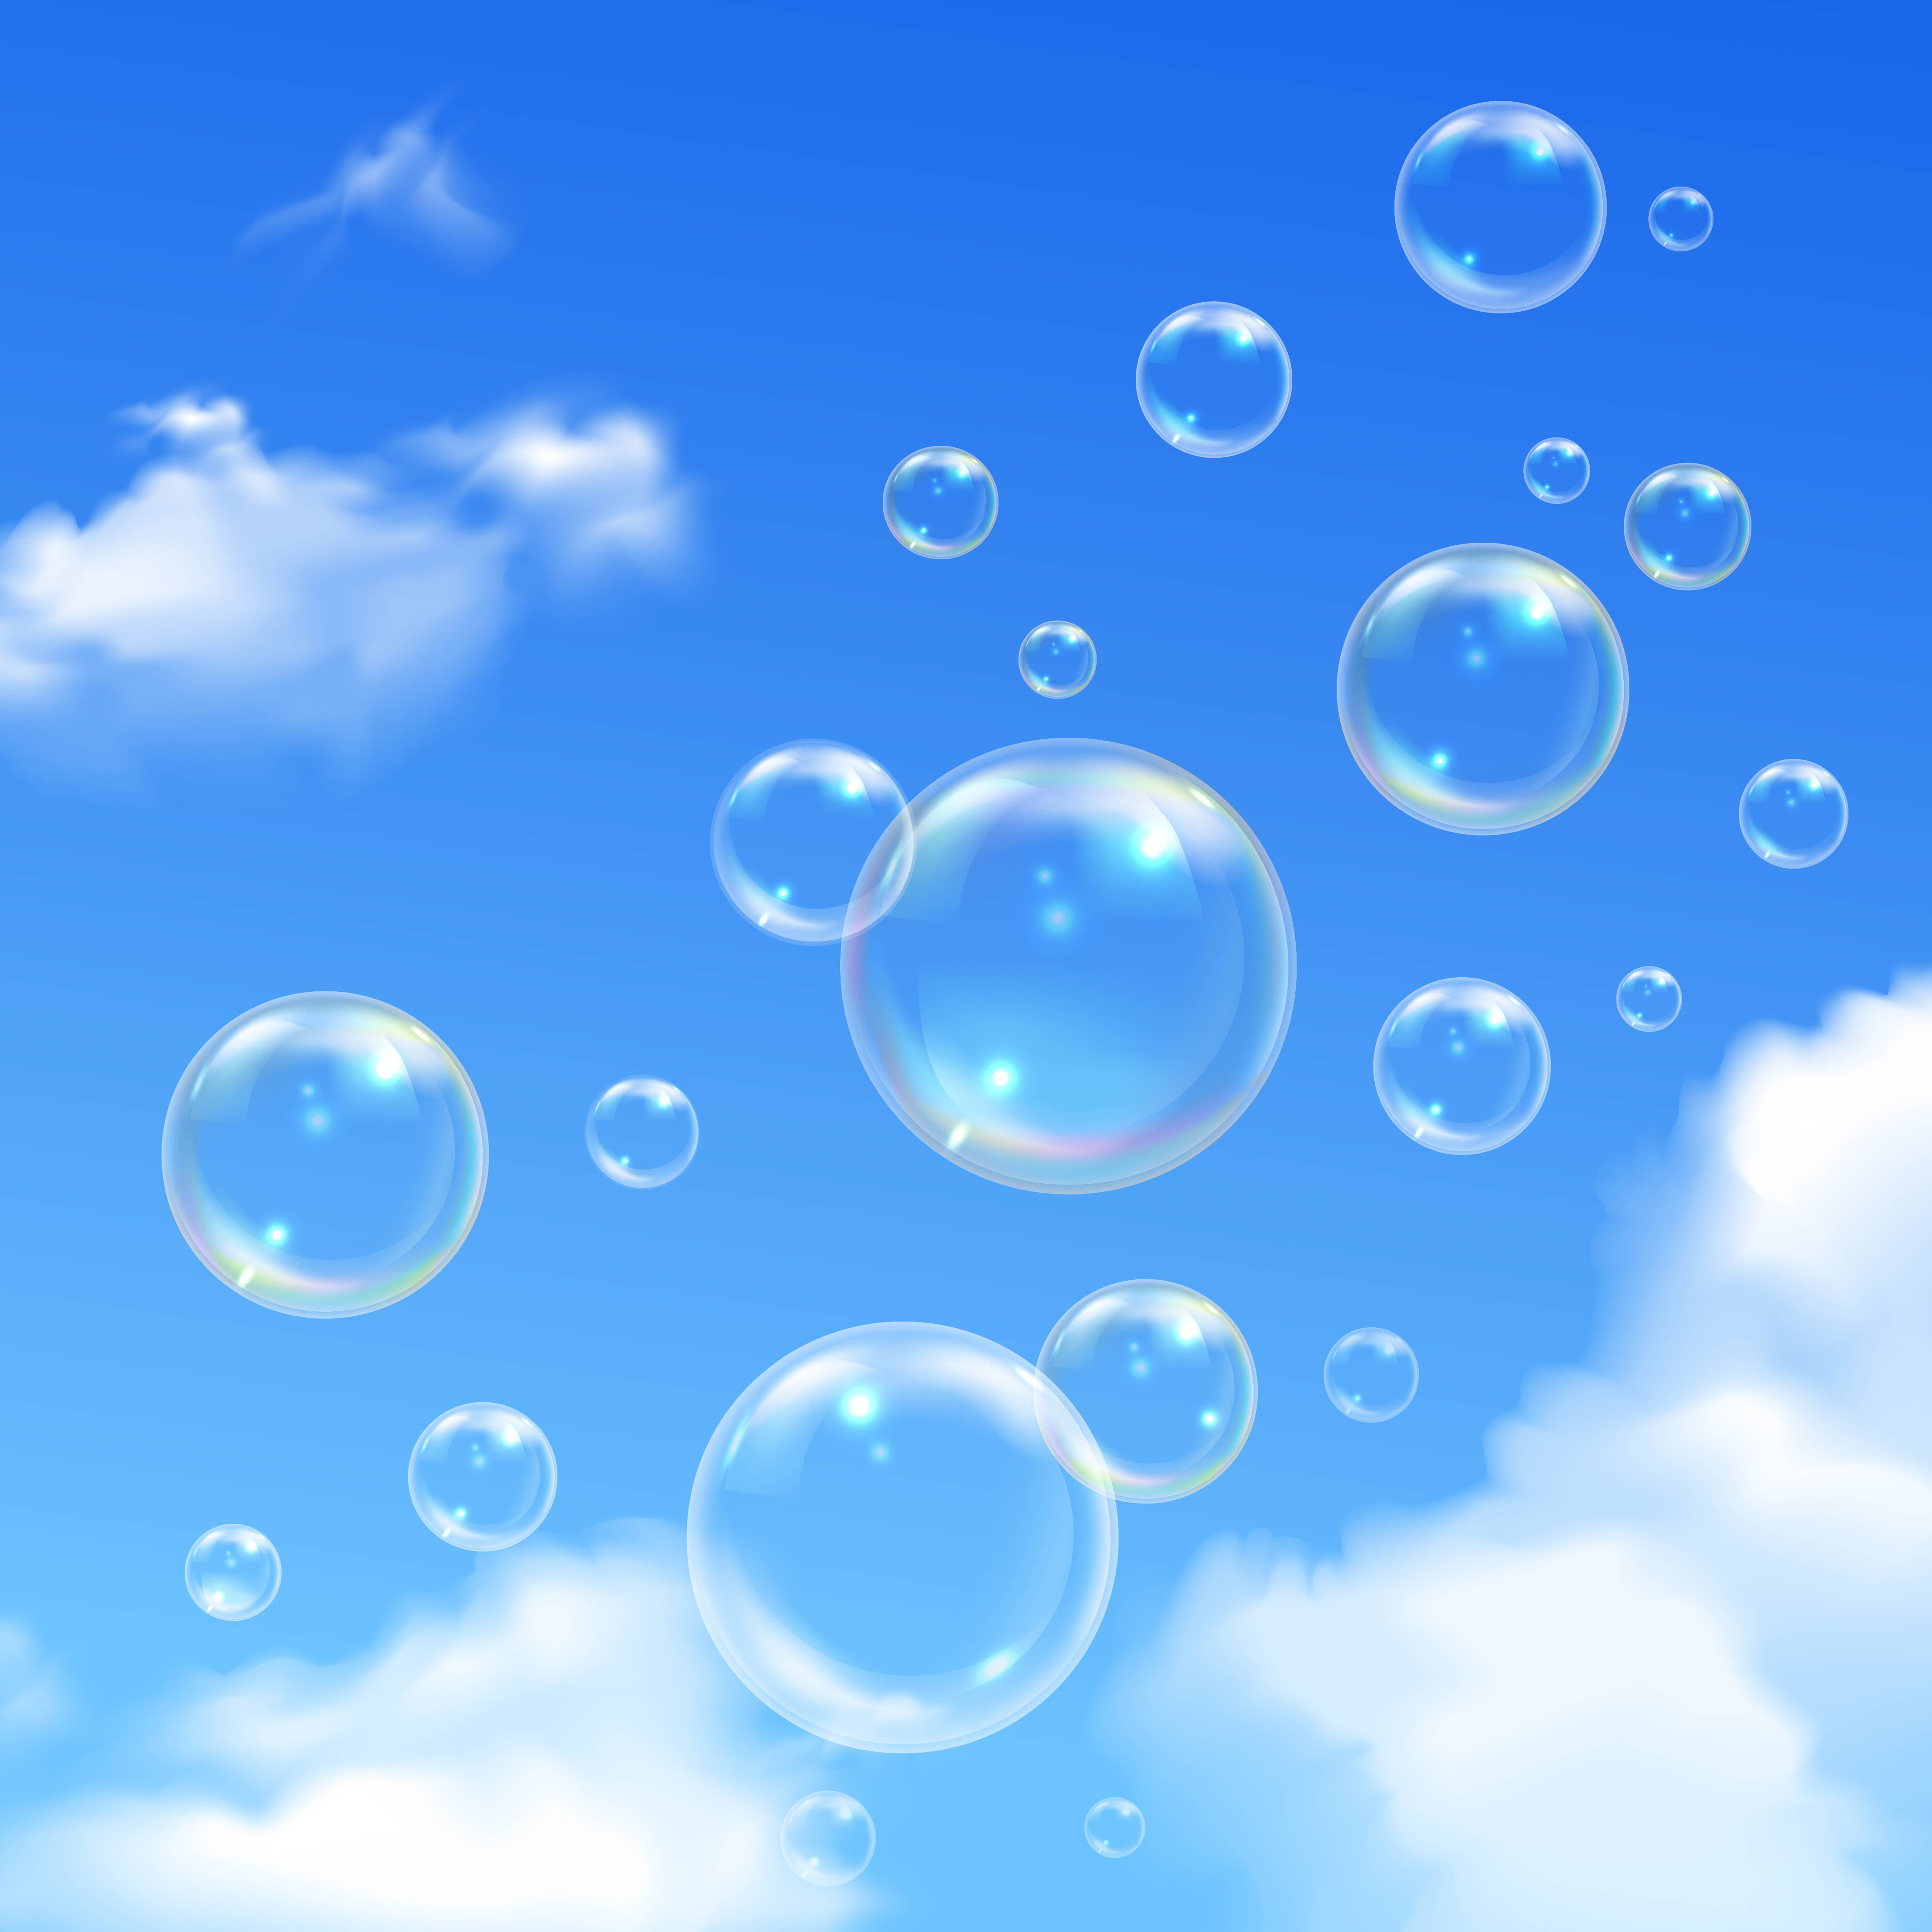 Soap Bubbles Blue Sky Realistic Background - Download Free ...